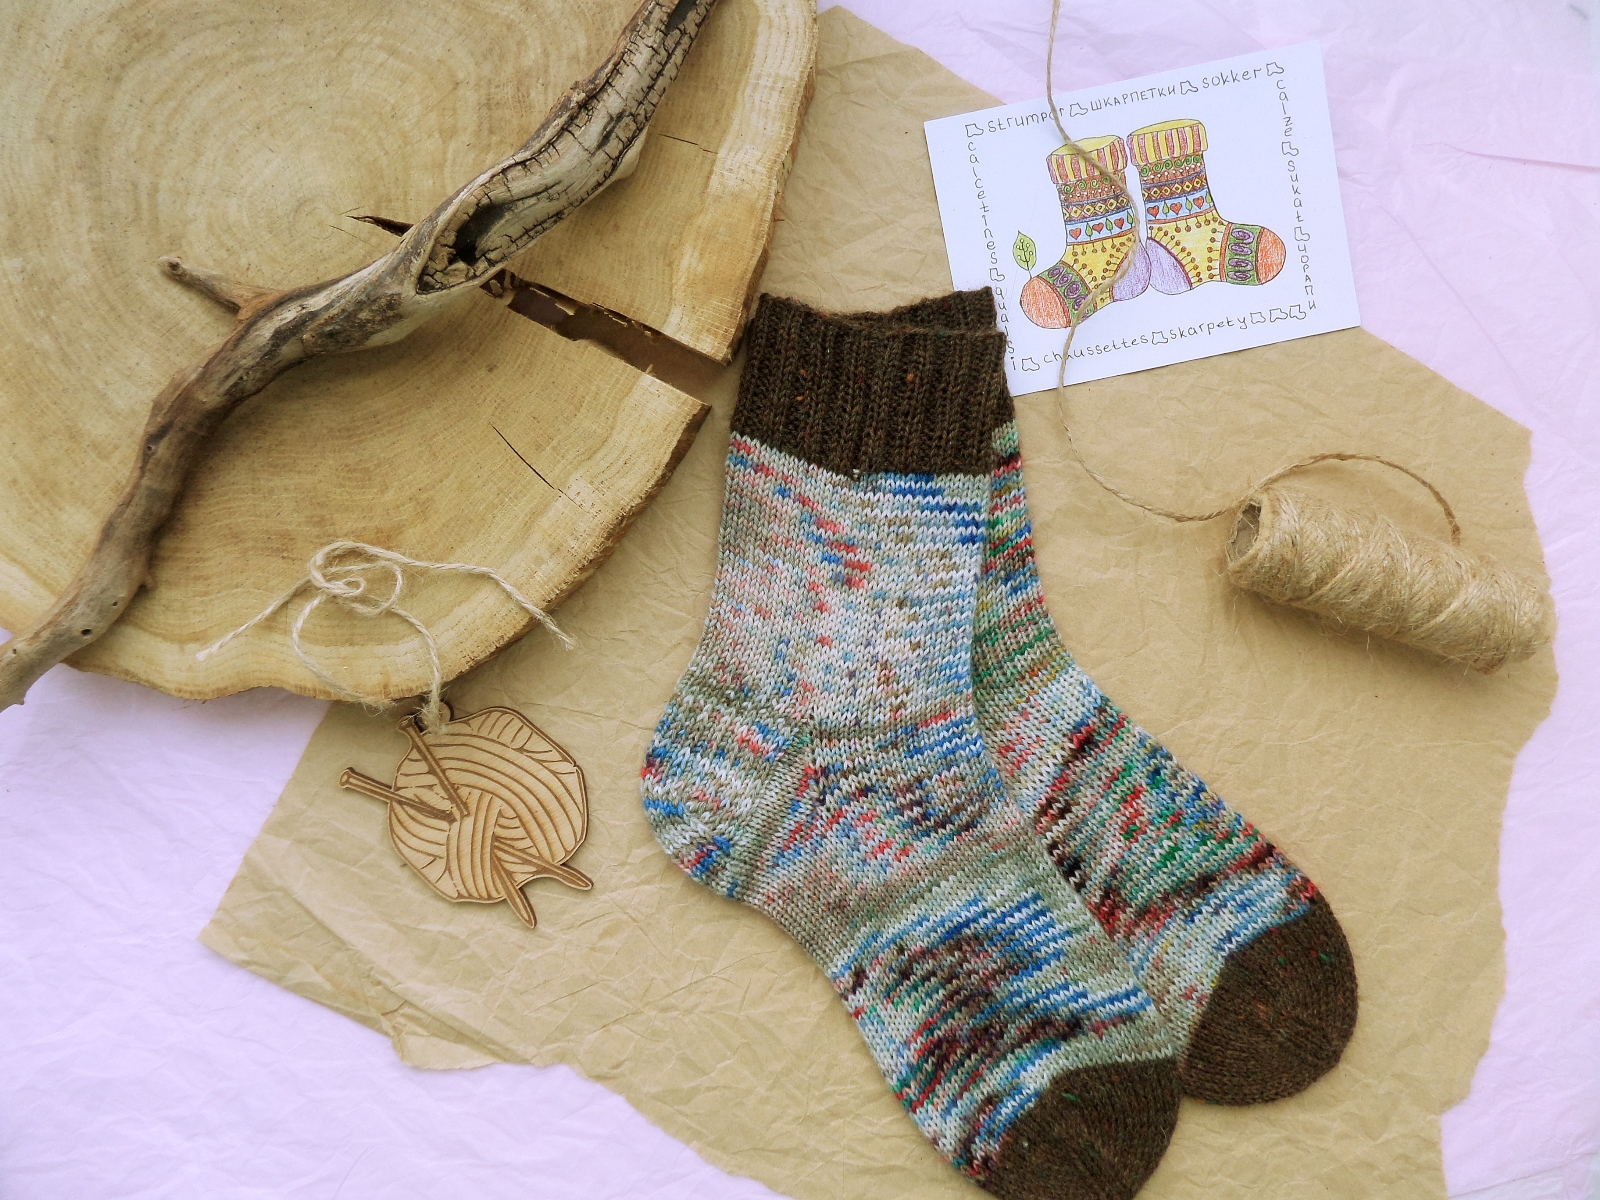 Hand knitting socks S-01 - nosochki 28